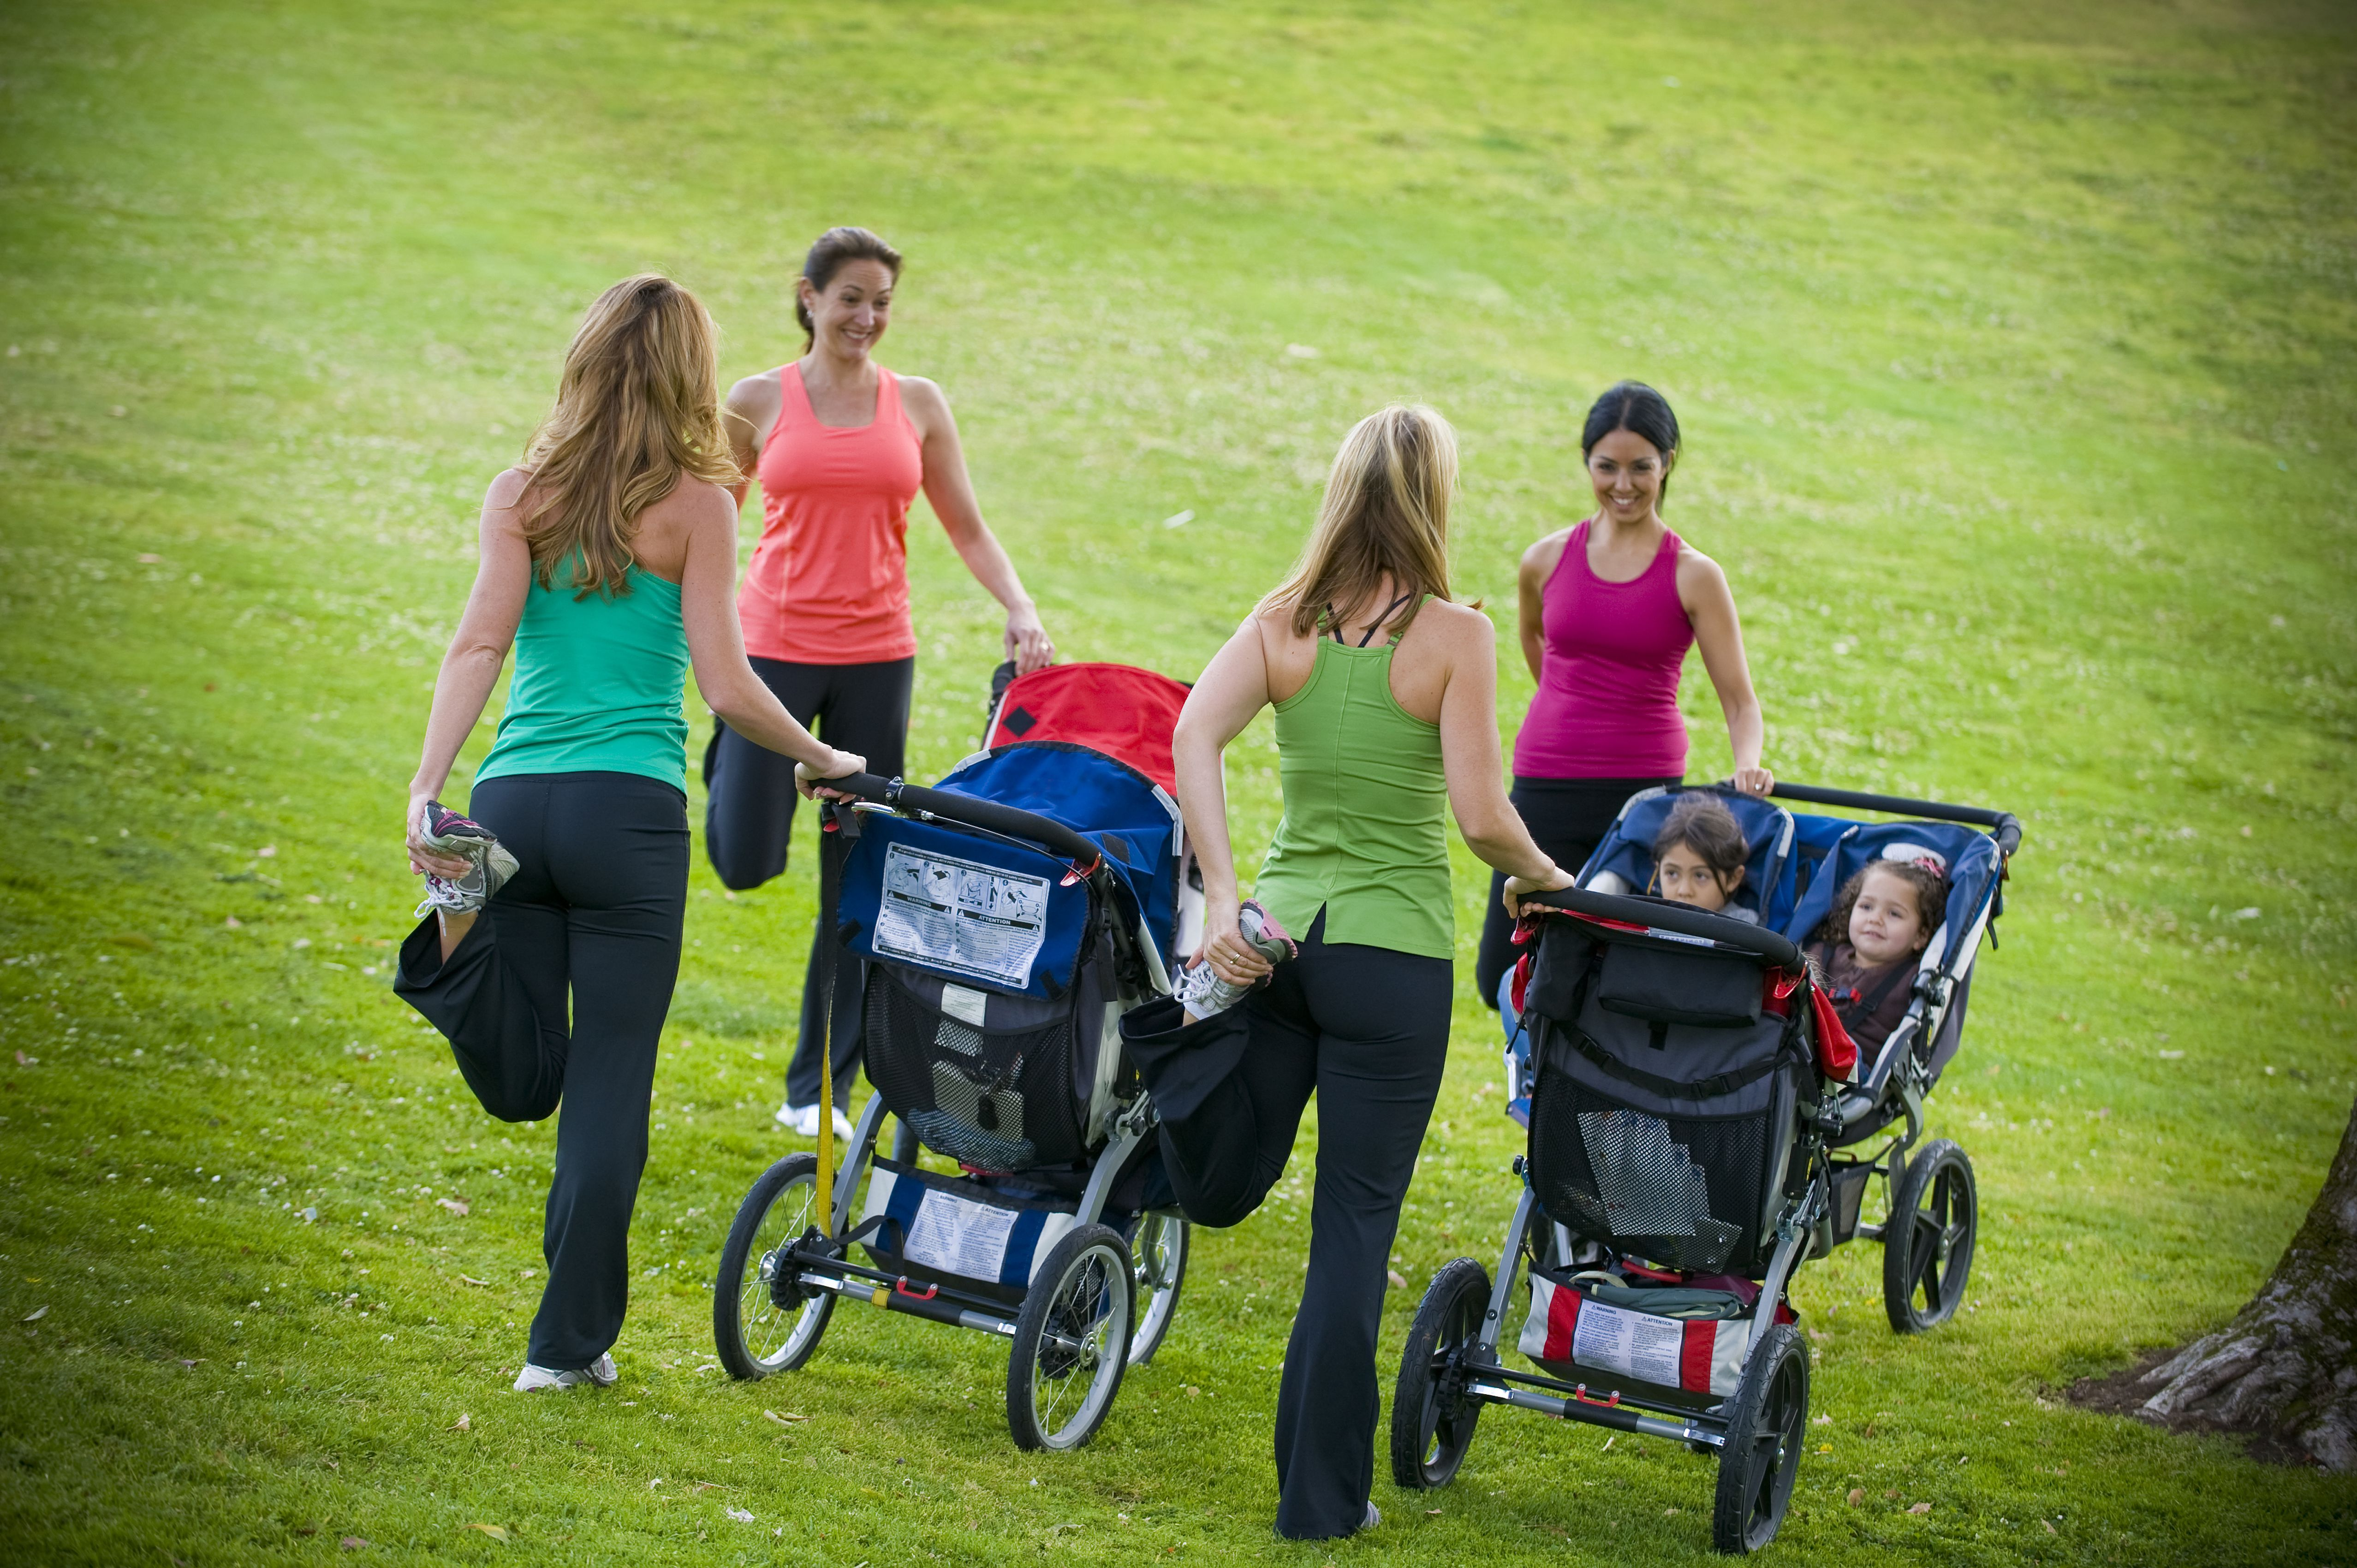 moms with strollers stretching